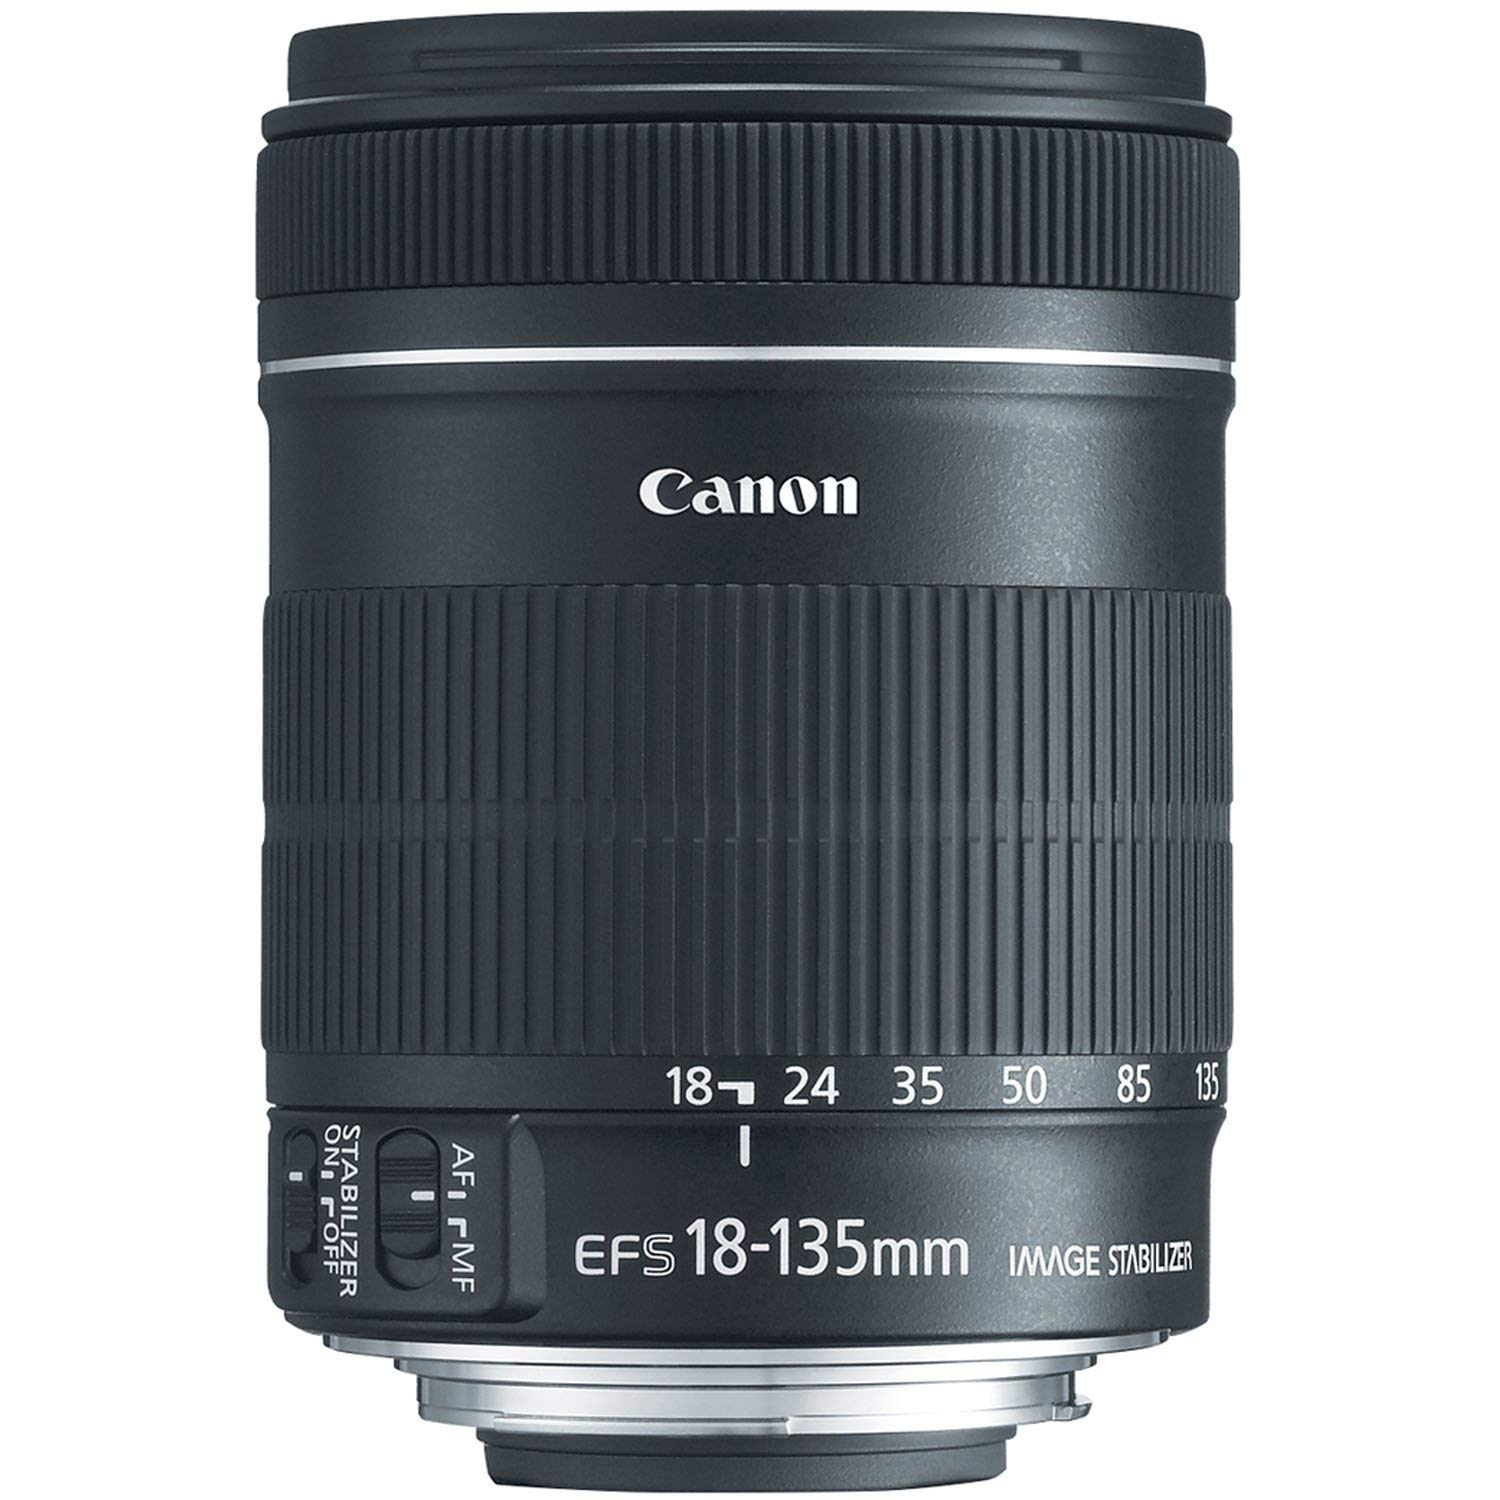 Canon EF-S 18-135mm f:3.5-5.6 - Best DSLR Lens on Budget